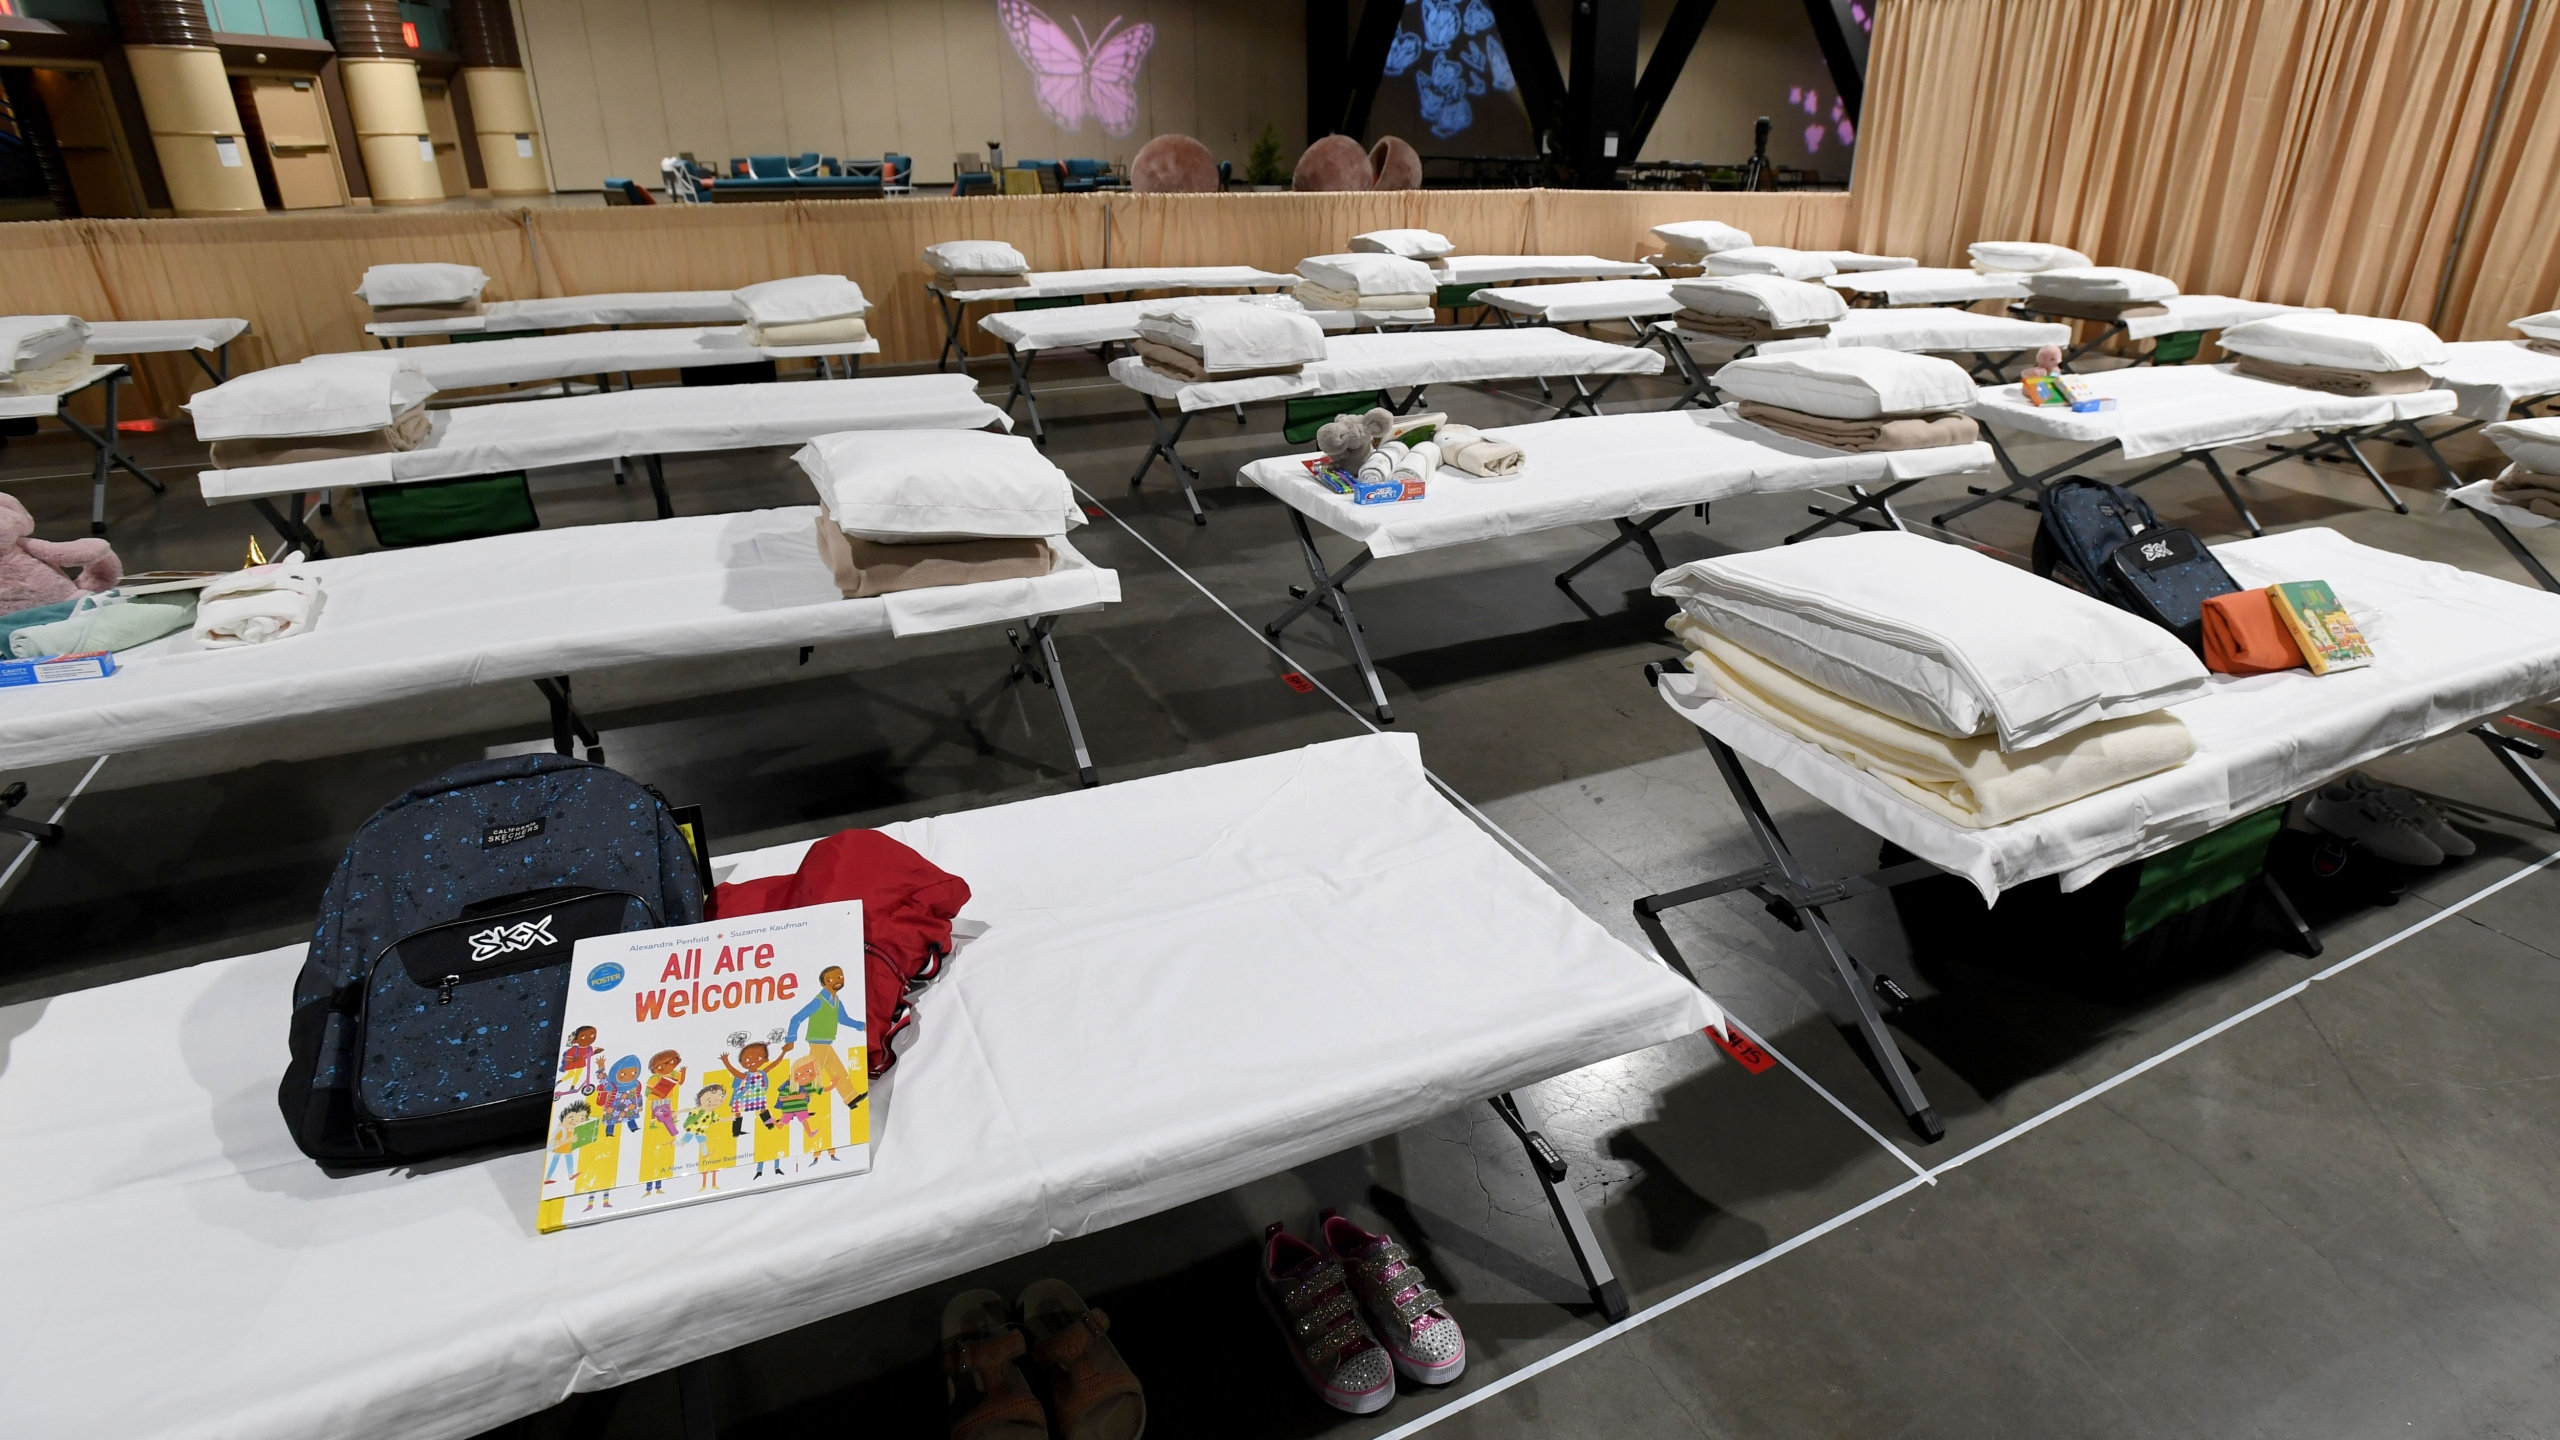 Sleeping quarters set up inside Exhibit Hall B for migrant children are shown during a tour of the Long Beach Convention Center on April 22, 2021. (Brittany Murray / Getty Images)